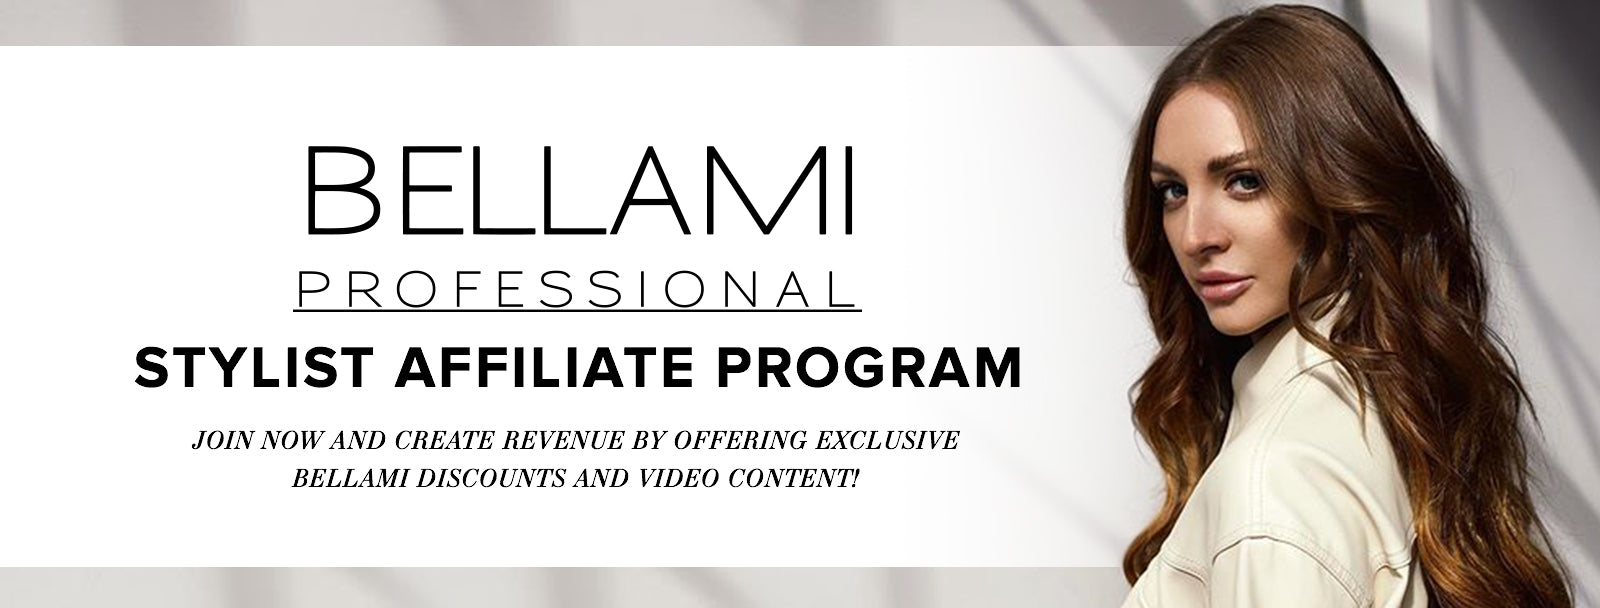 BELLAMI Professional Stylist Affiliate Program